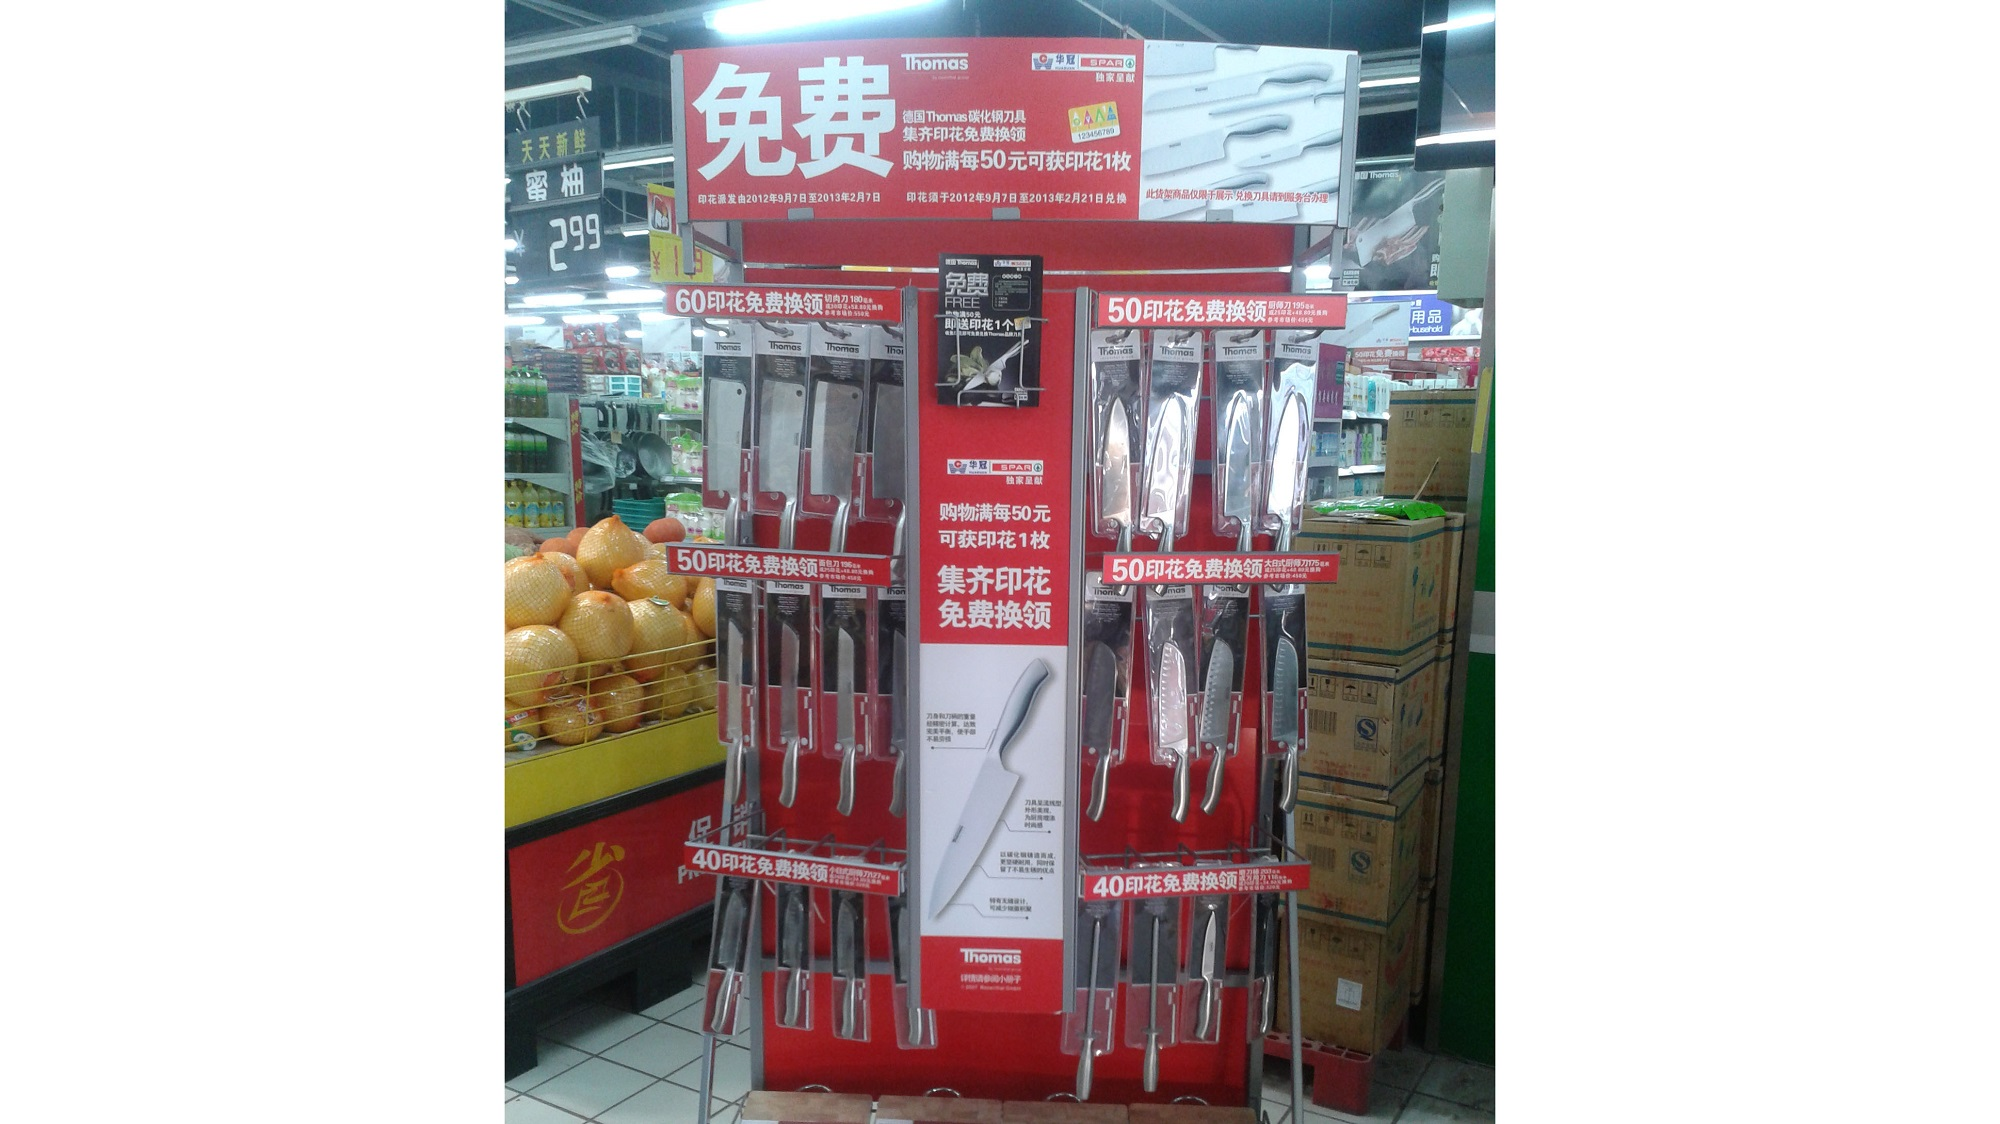 Get Free TCC Knives Campaign-standing